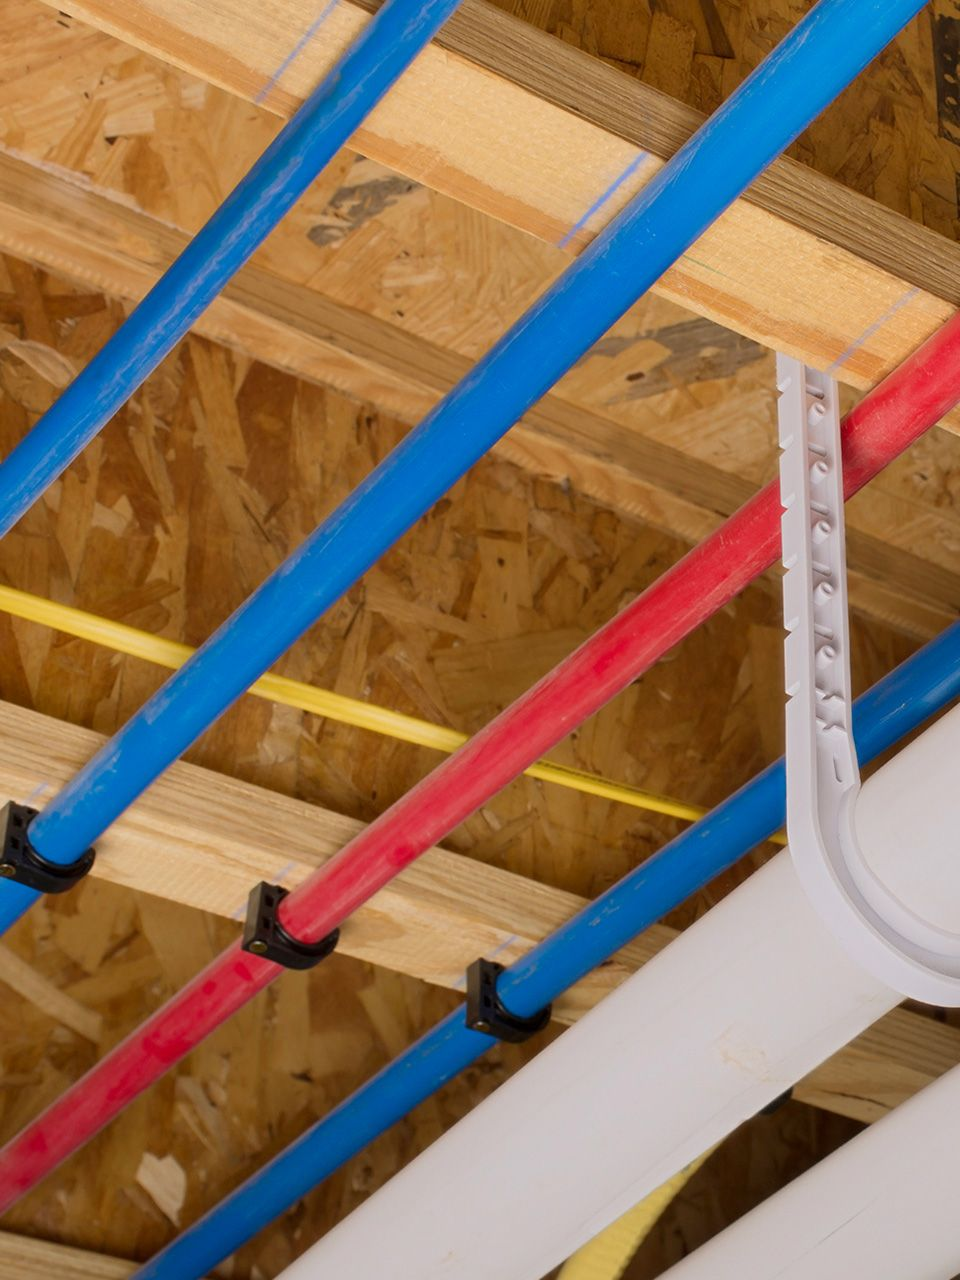 How To Install Pex Tubing In 2020 Pex Tubing Handyman Projects